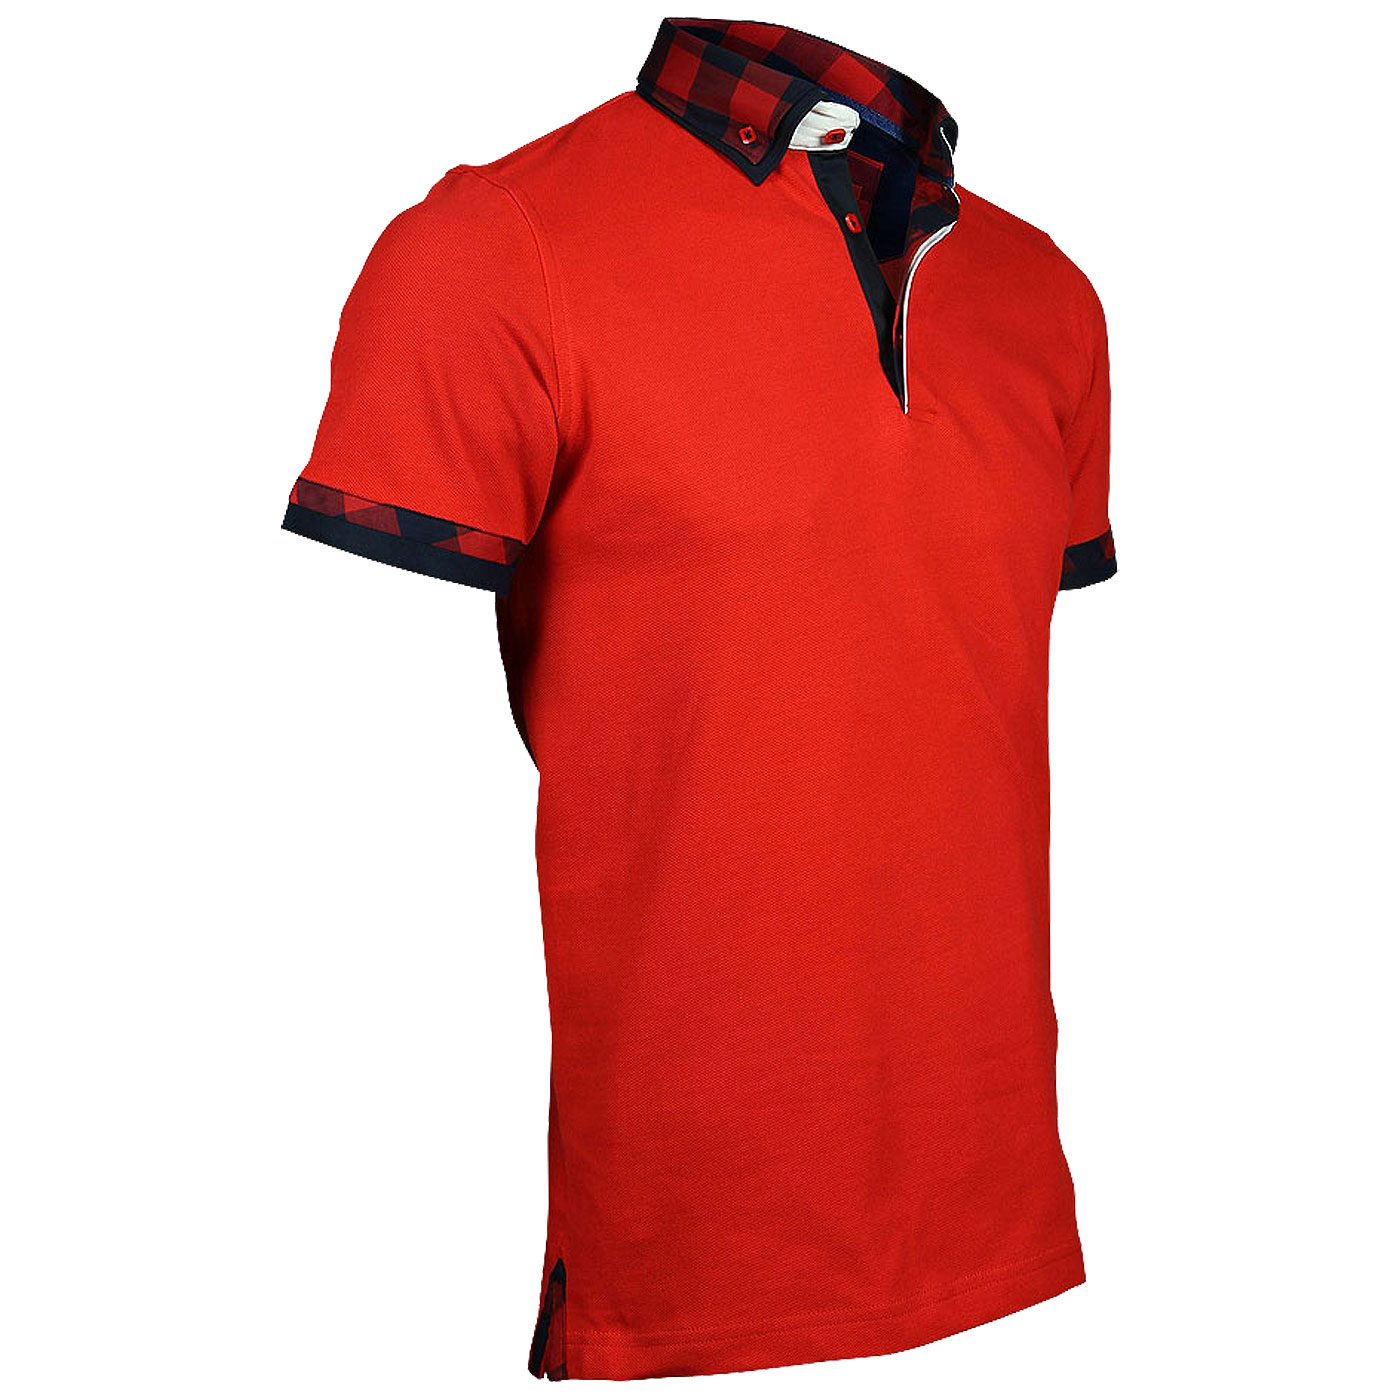 Men's quality cotton polo shirts